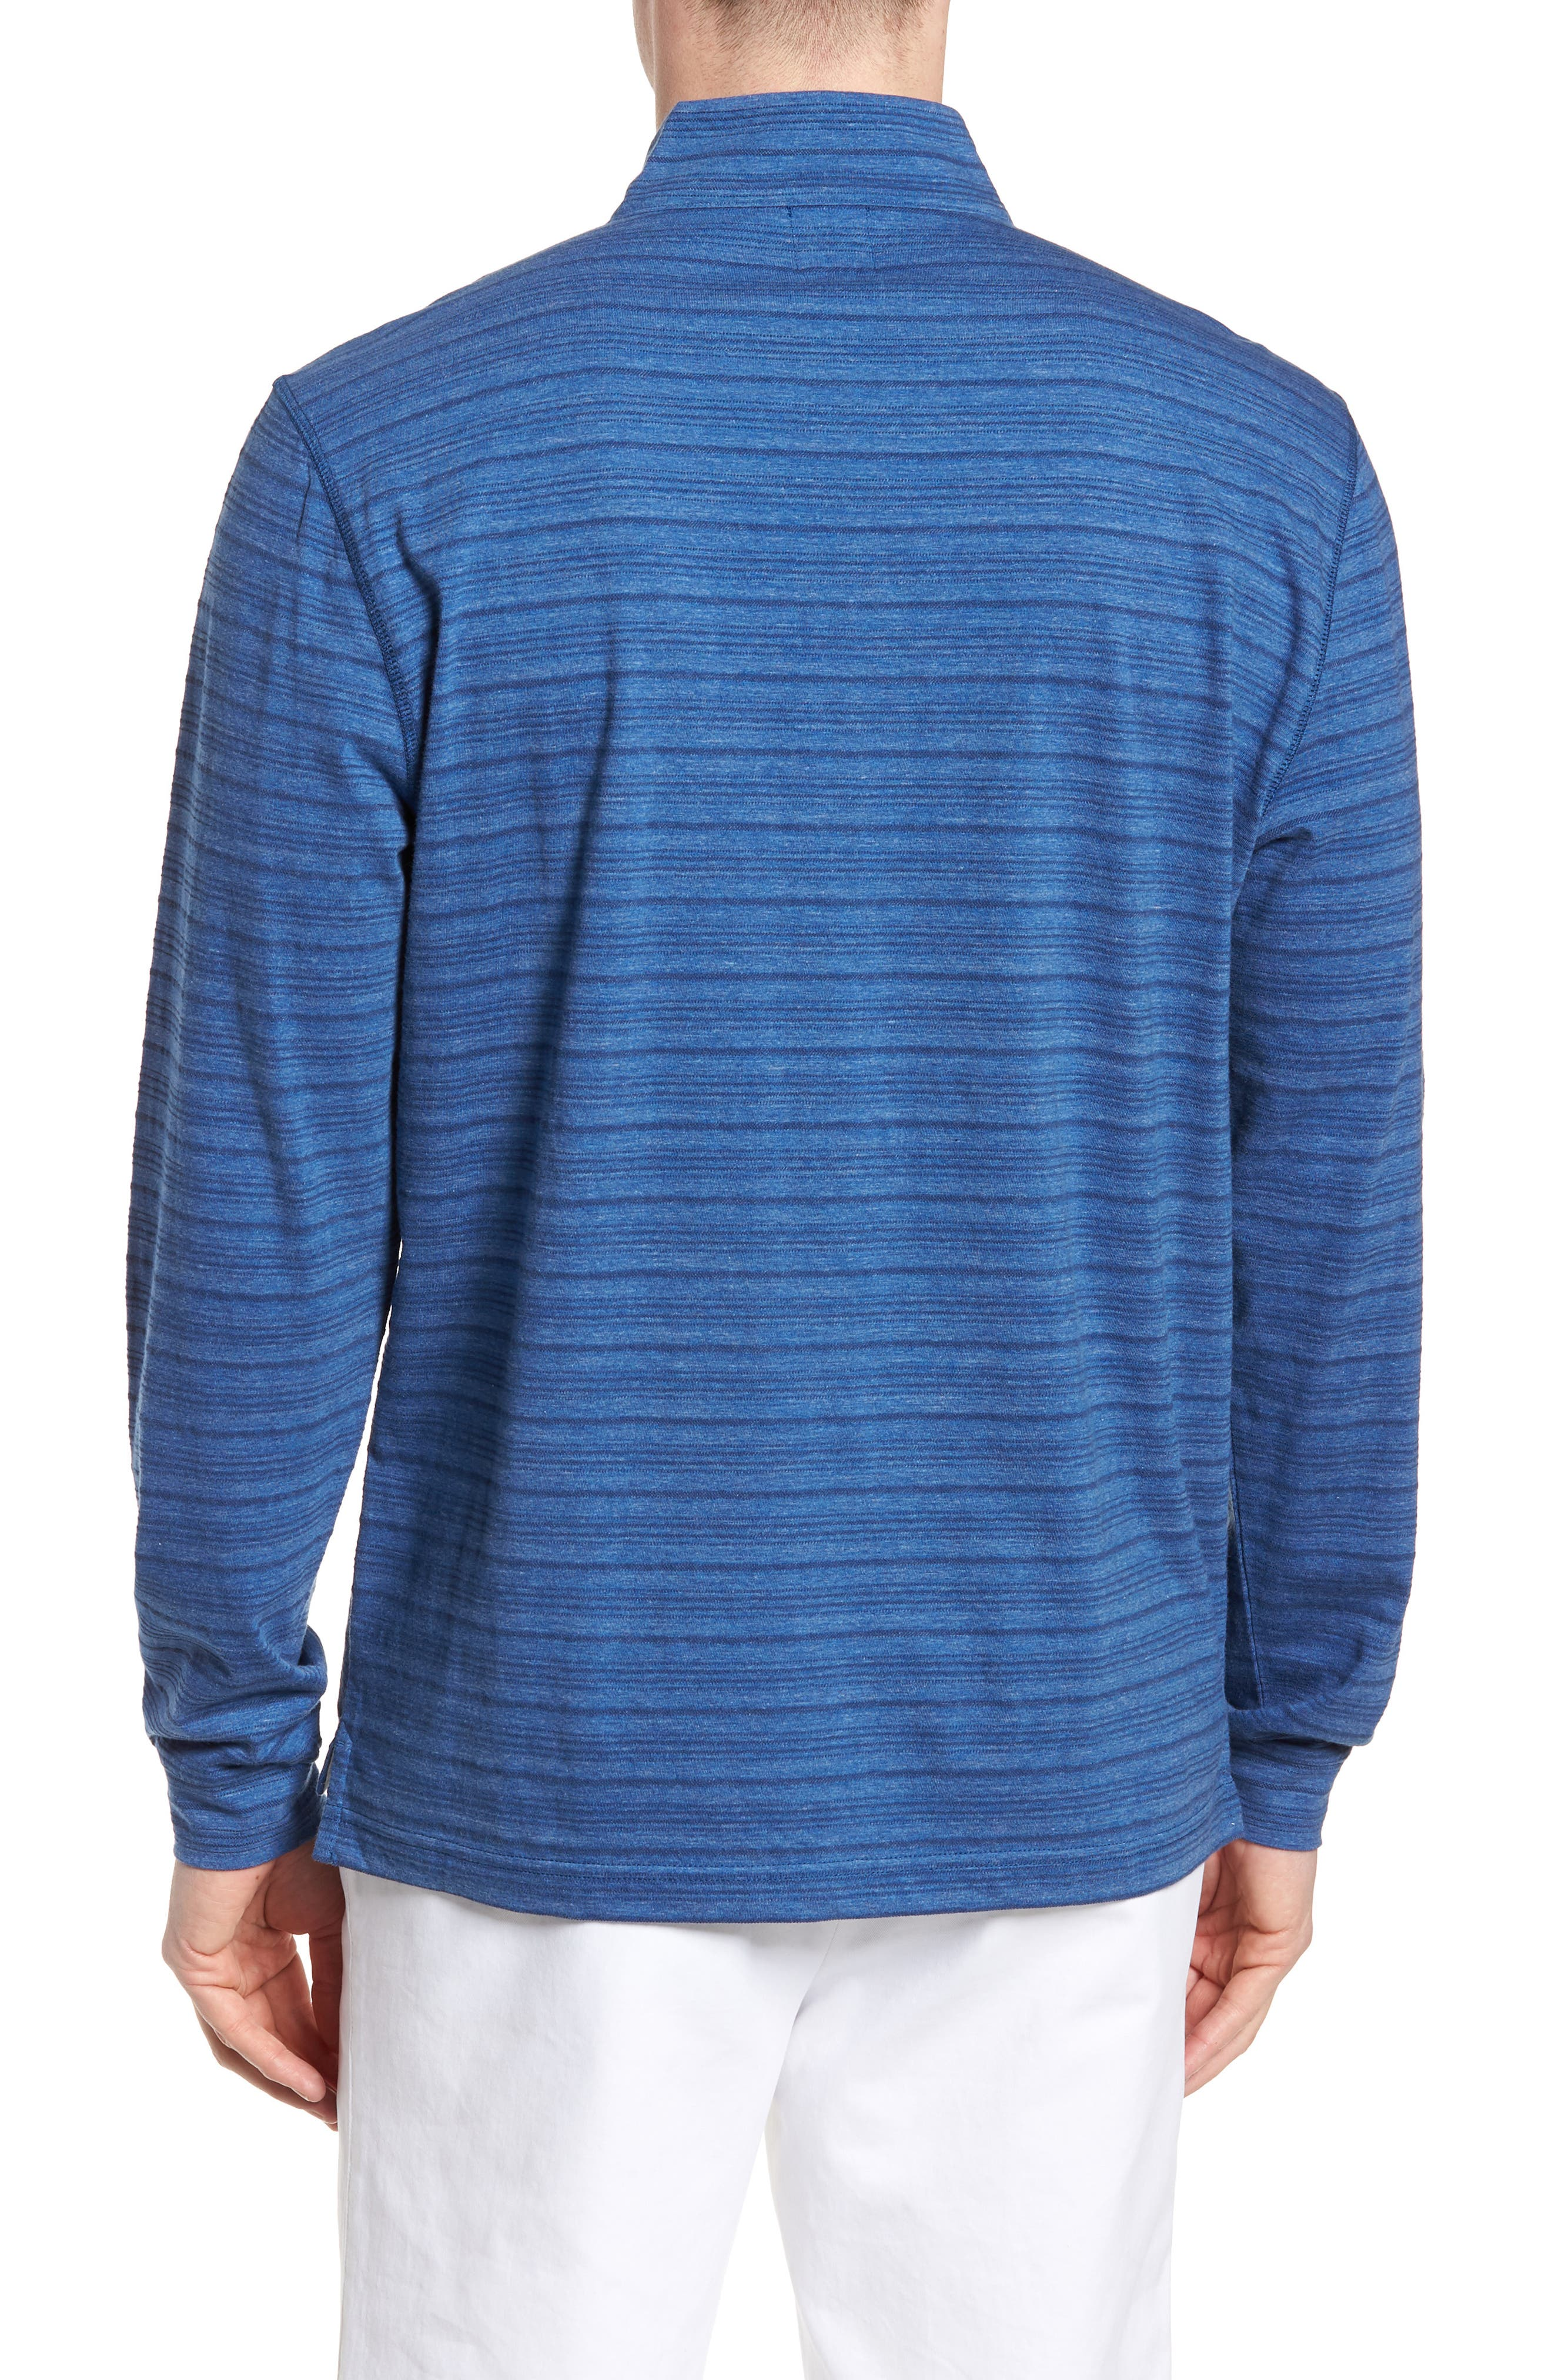 Calder Regular Fit T-Shirt,                             Alternate thumbnail 2, color,                             Regatta